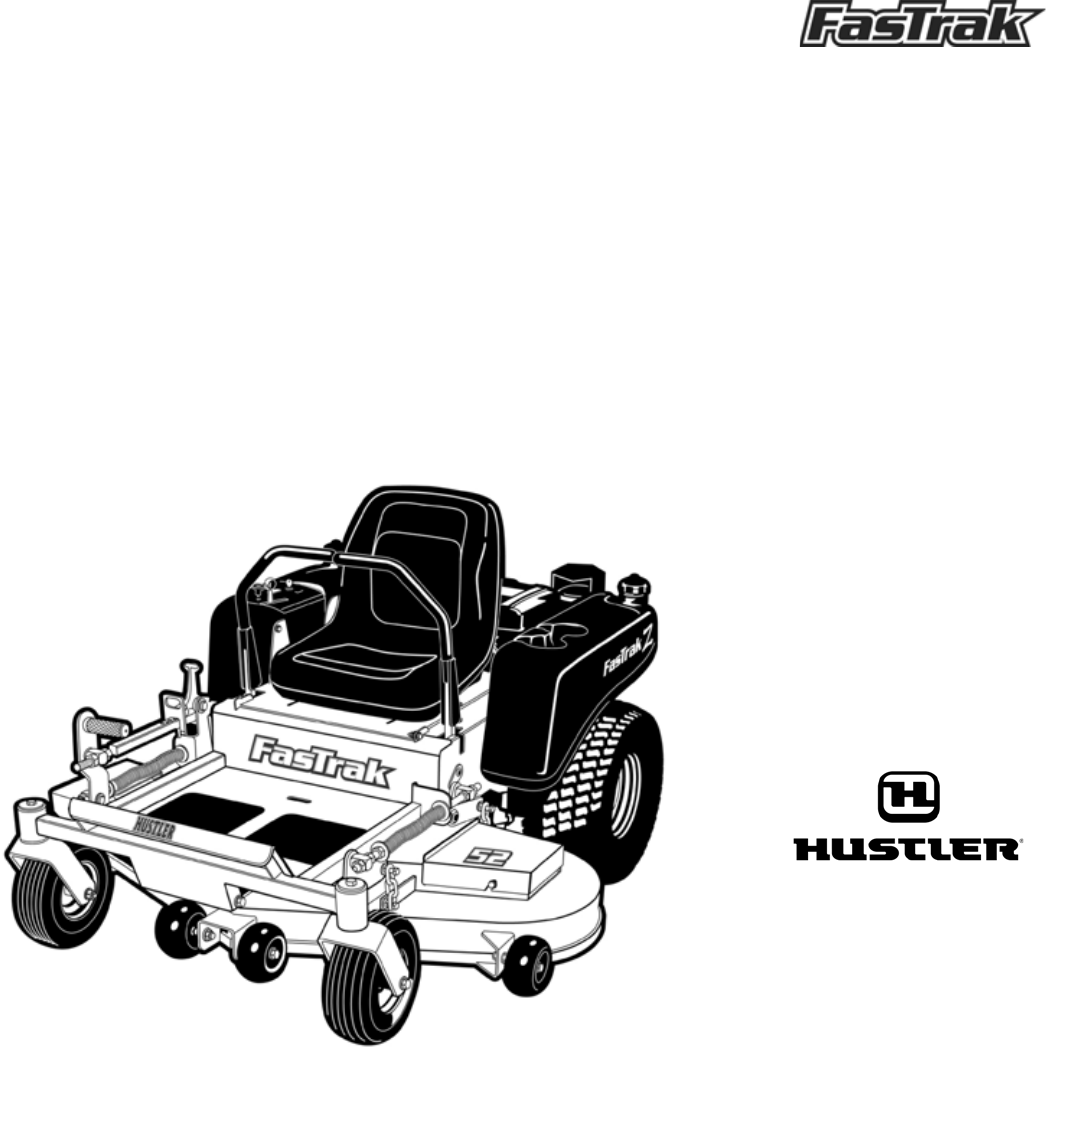 Hustler Turf Lawn Mower Lawn Mower User Guide